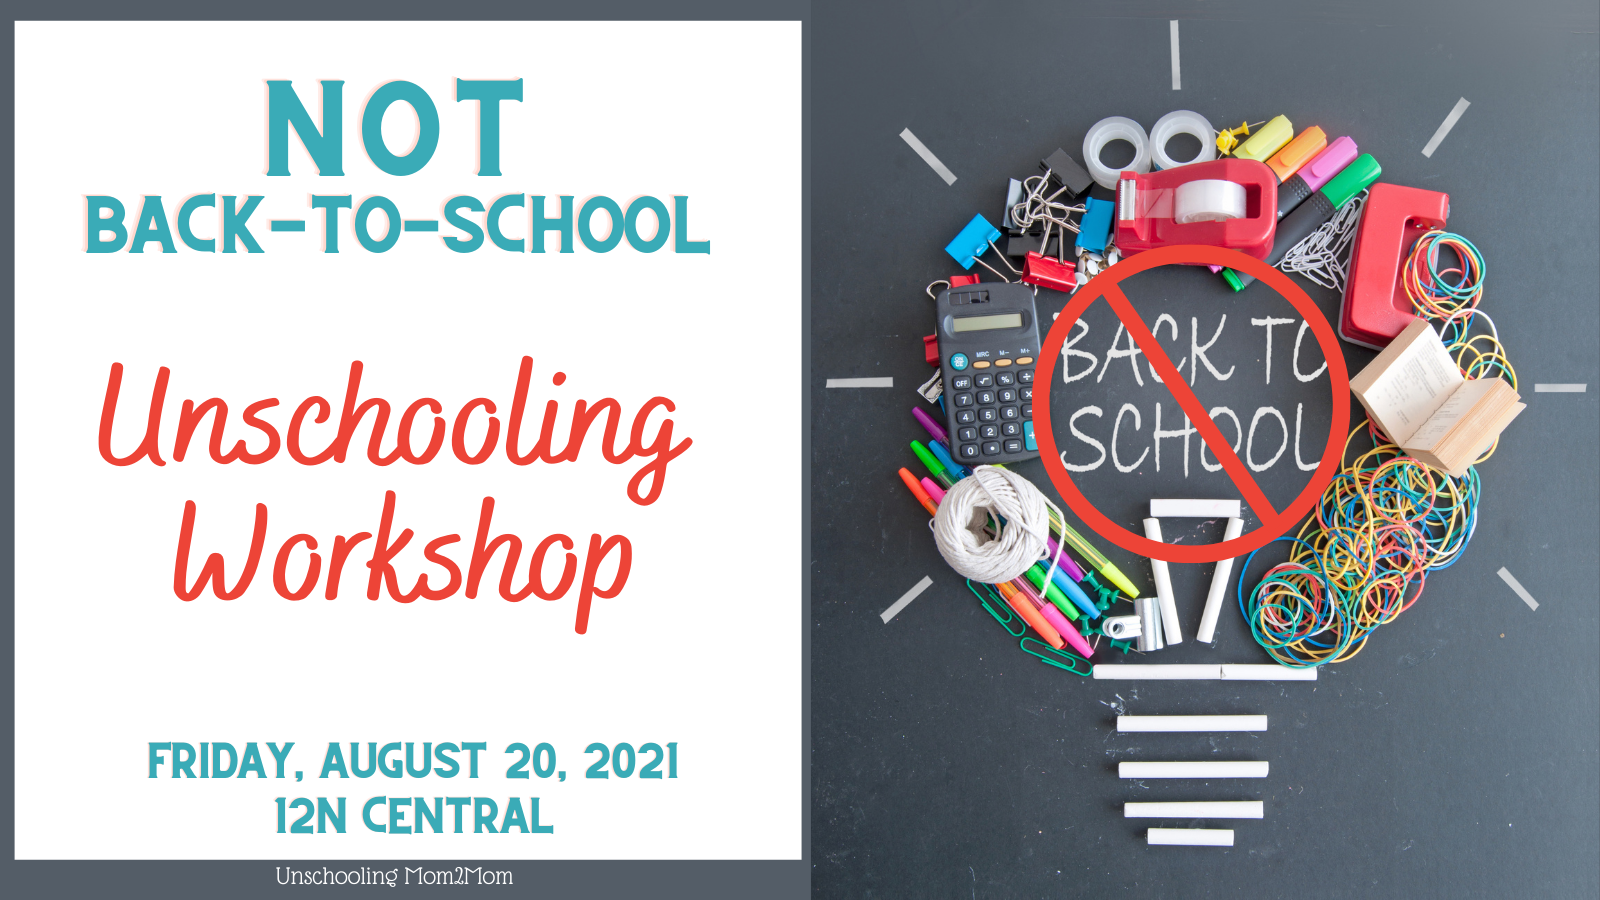 Free Unschooling Workshop - NOT Back-to-School